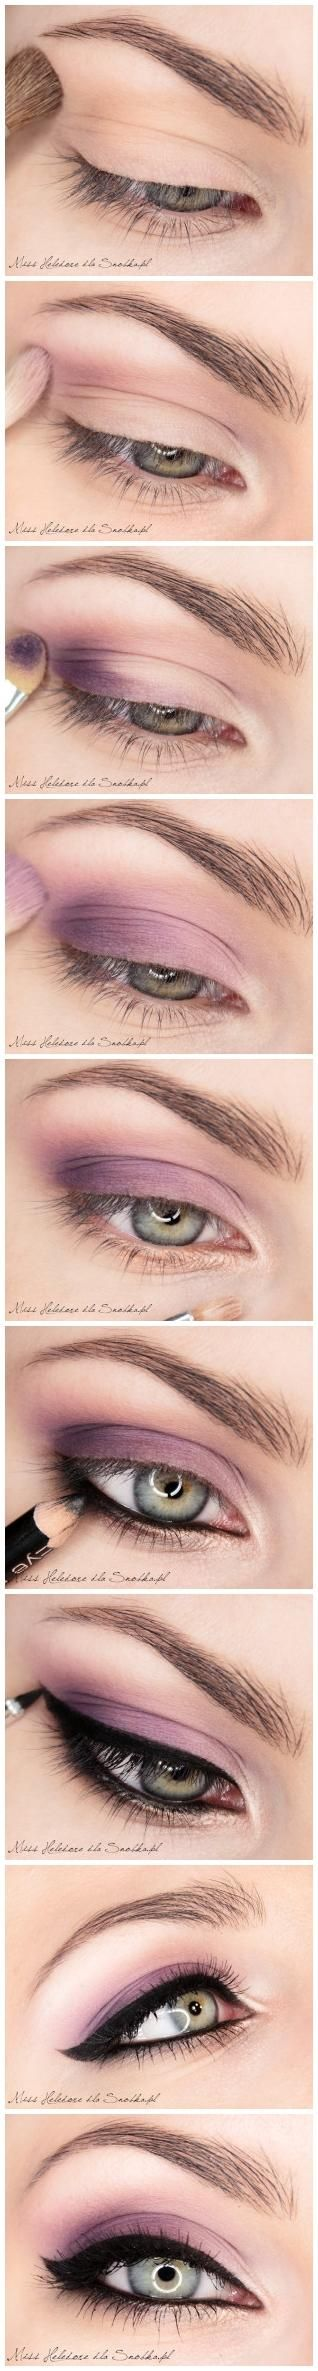 Plum for green eyes